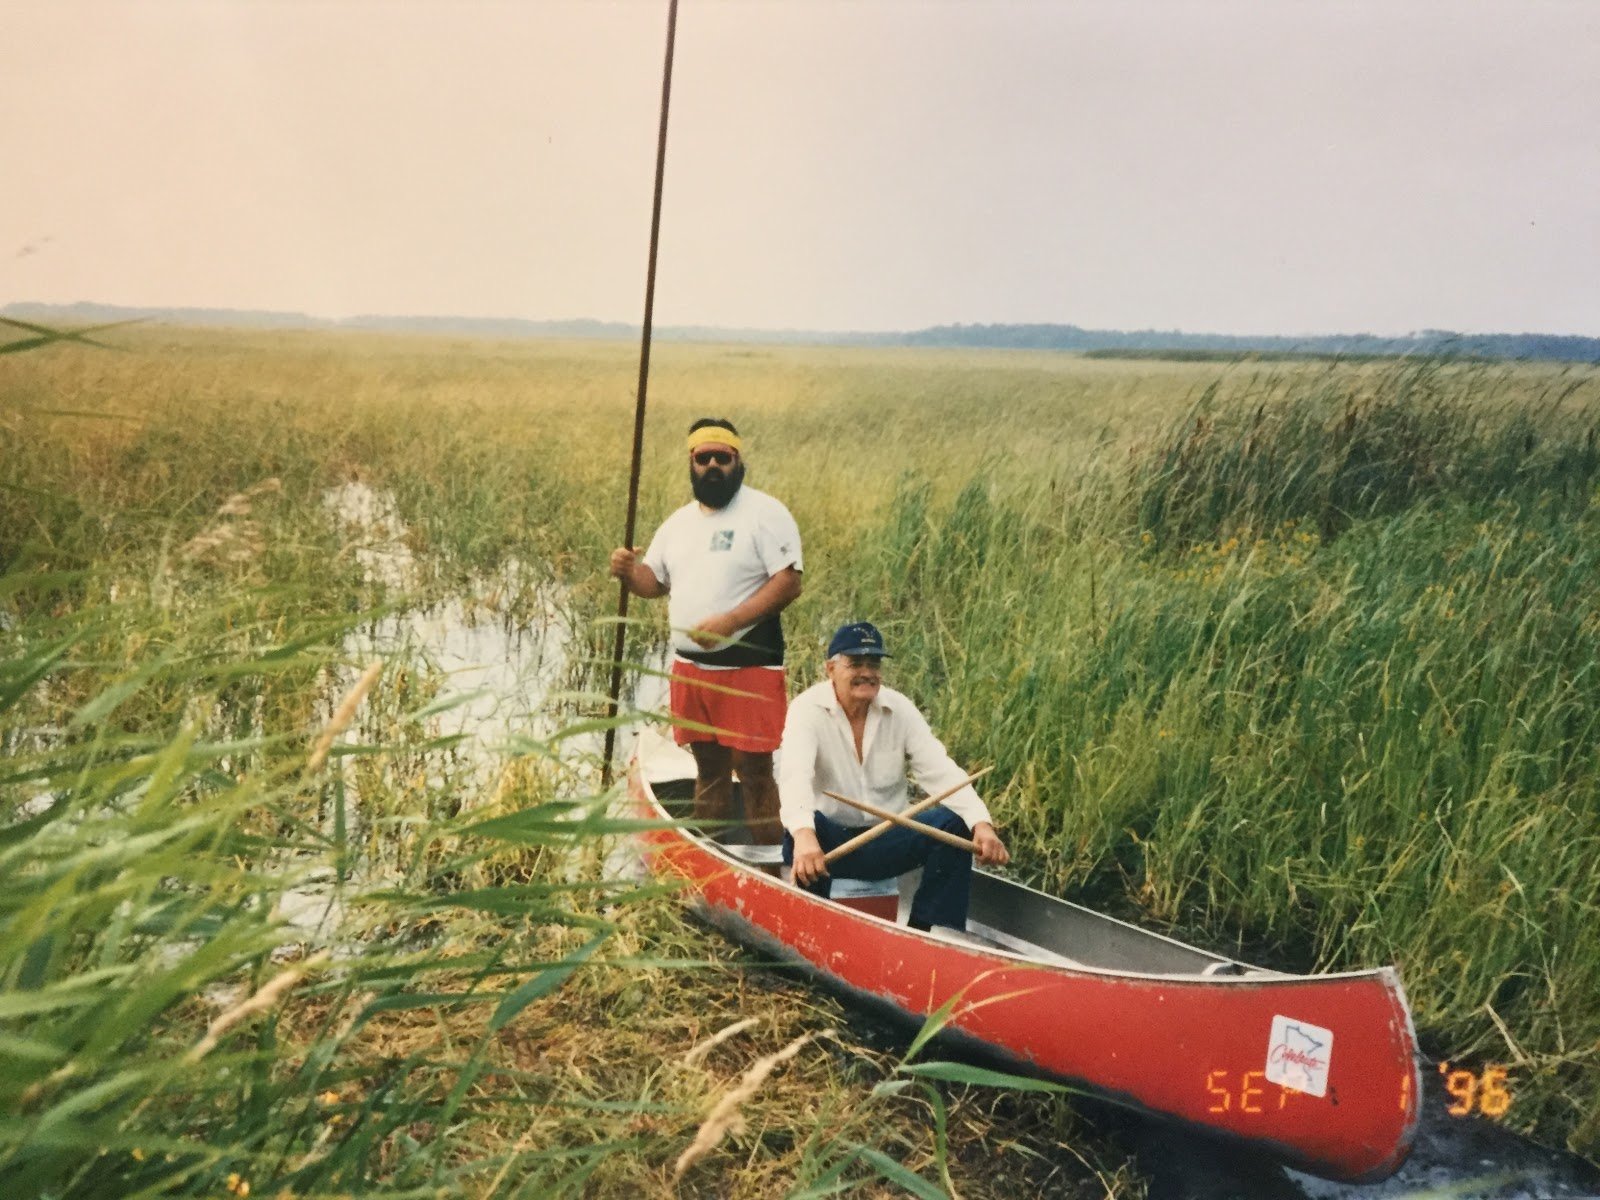 A red canoe with two men -- one bearded with sunglasses and standing, the other older and sitting in a baseball camp and white button-down shirt -- moves through a body of water thick with green stalks of wild rice